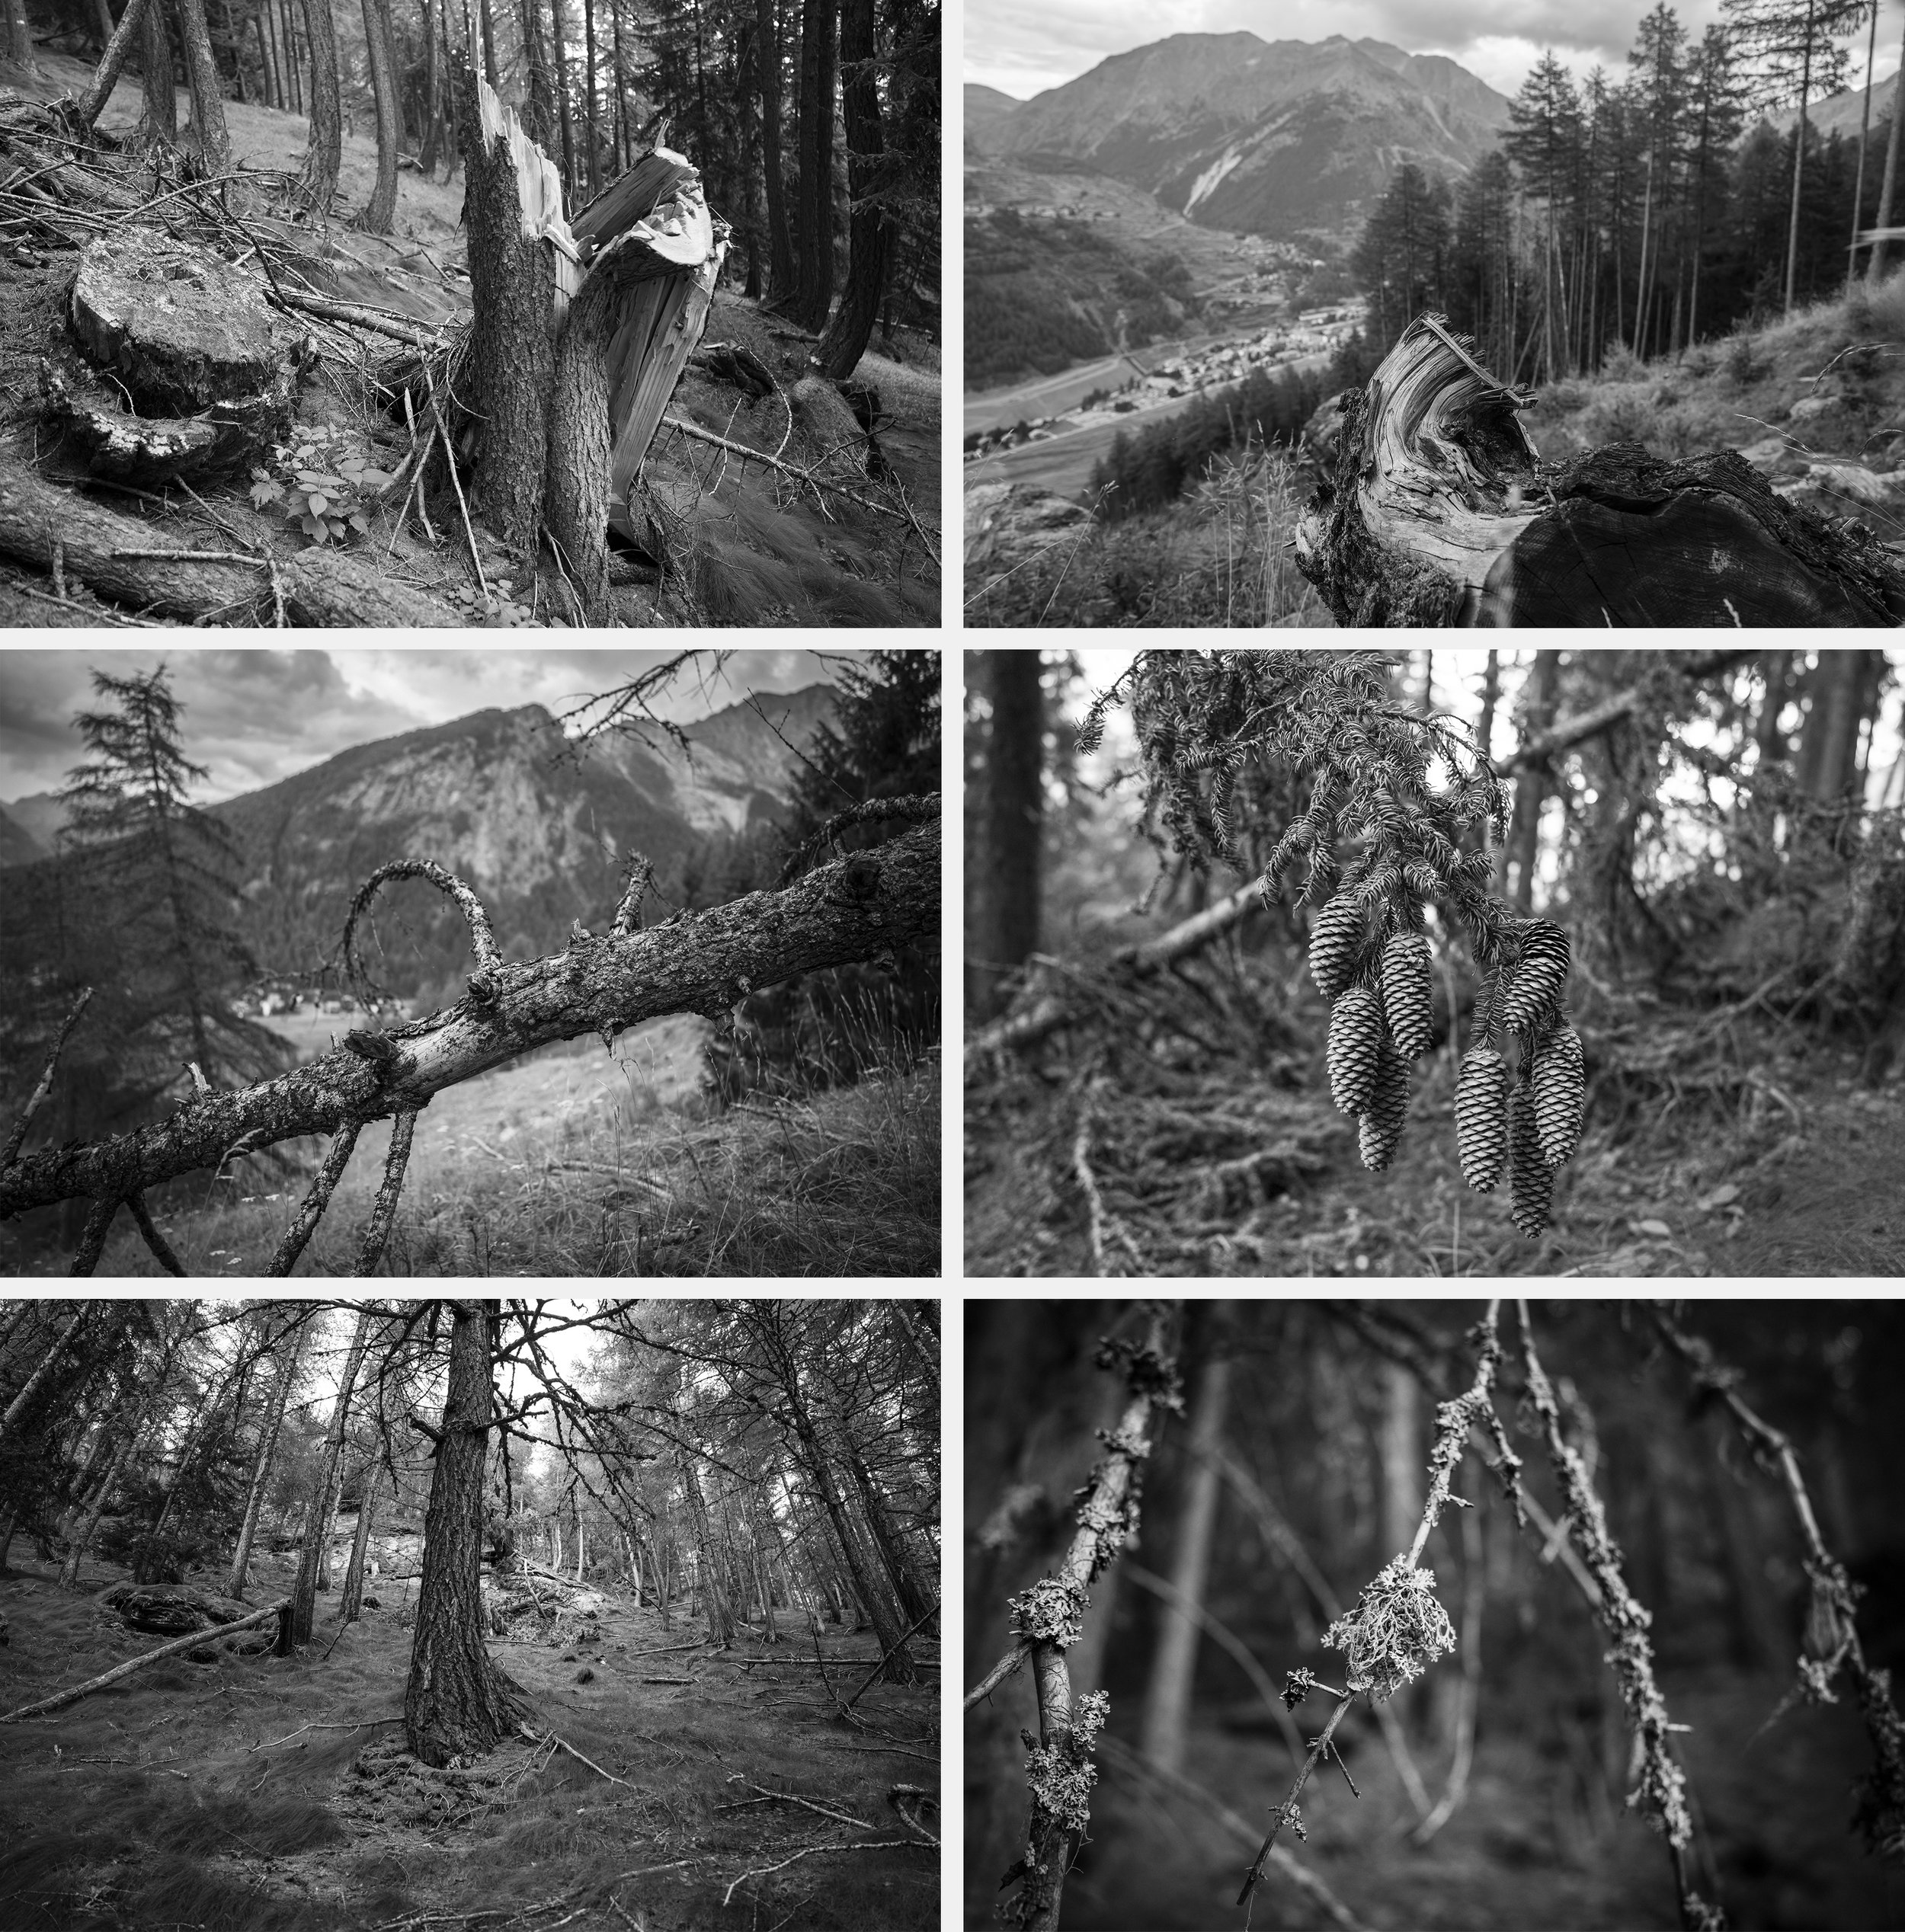 Felled and sick pine trees on the way to Punta Pousset. Because of increased temperatures the Alps have seen an increase in pine beetles that have eaten into the pines, killing them. Drought has also increased the risk of forest fires and killed trees because of lack of water.